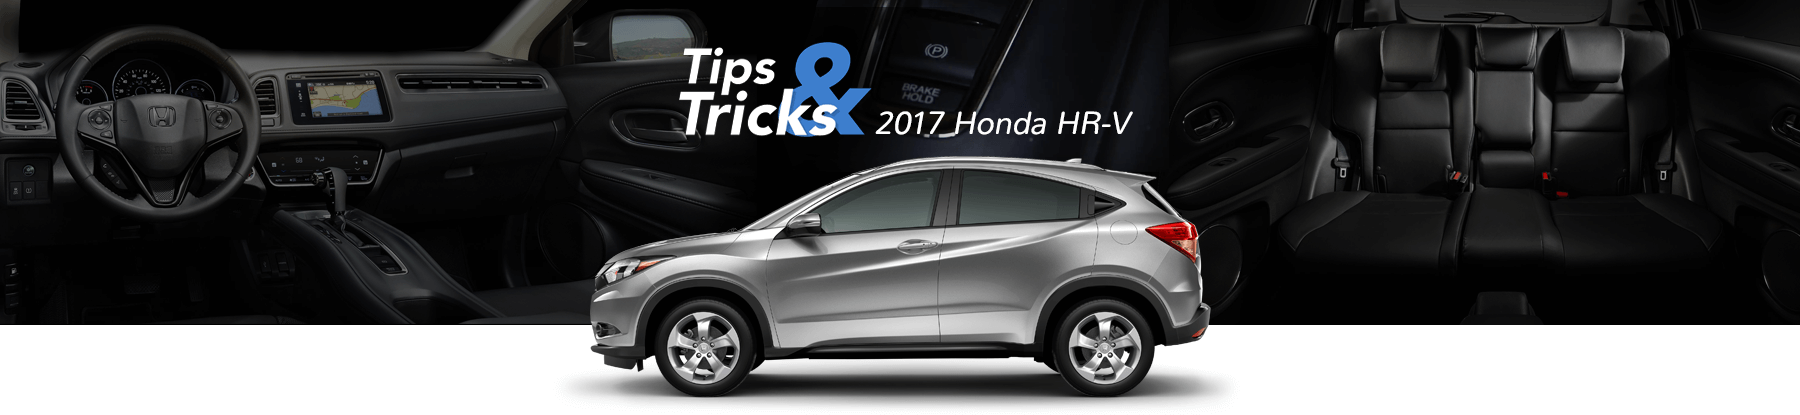 2017 Honda HR-V Tips & Tricks Banner